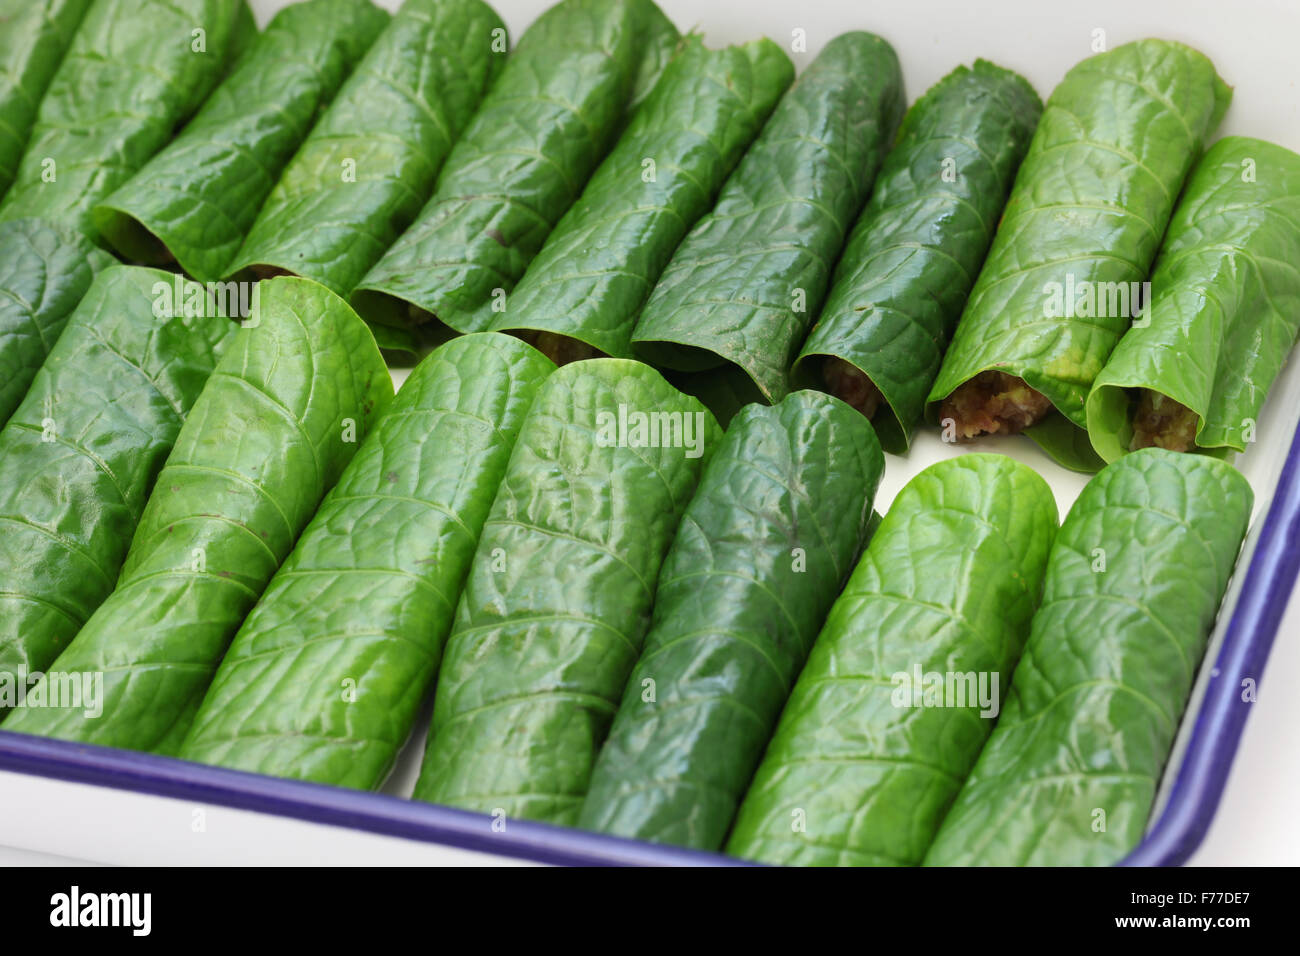 preparing bo la lot, vietnamese cuisine, grilled minced beef wrapped in betel leaf - Stock Image